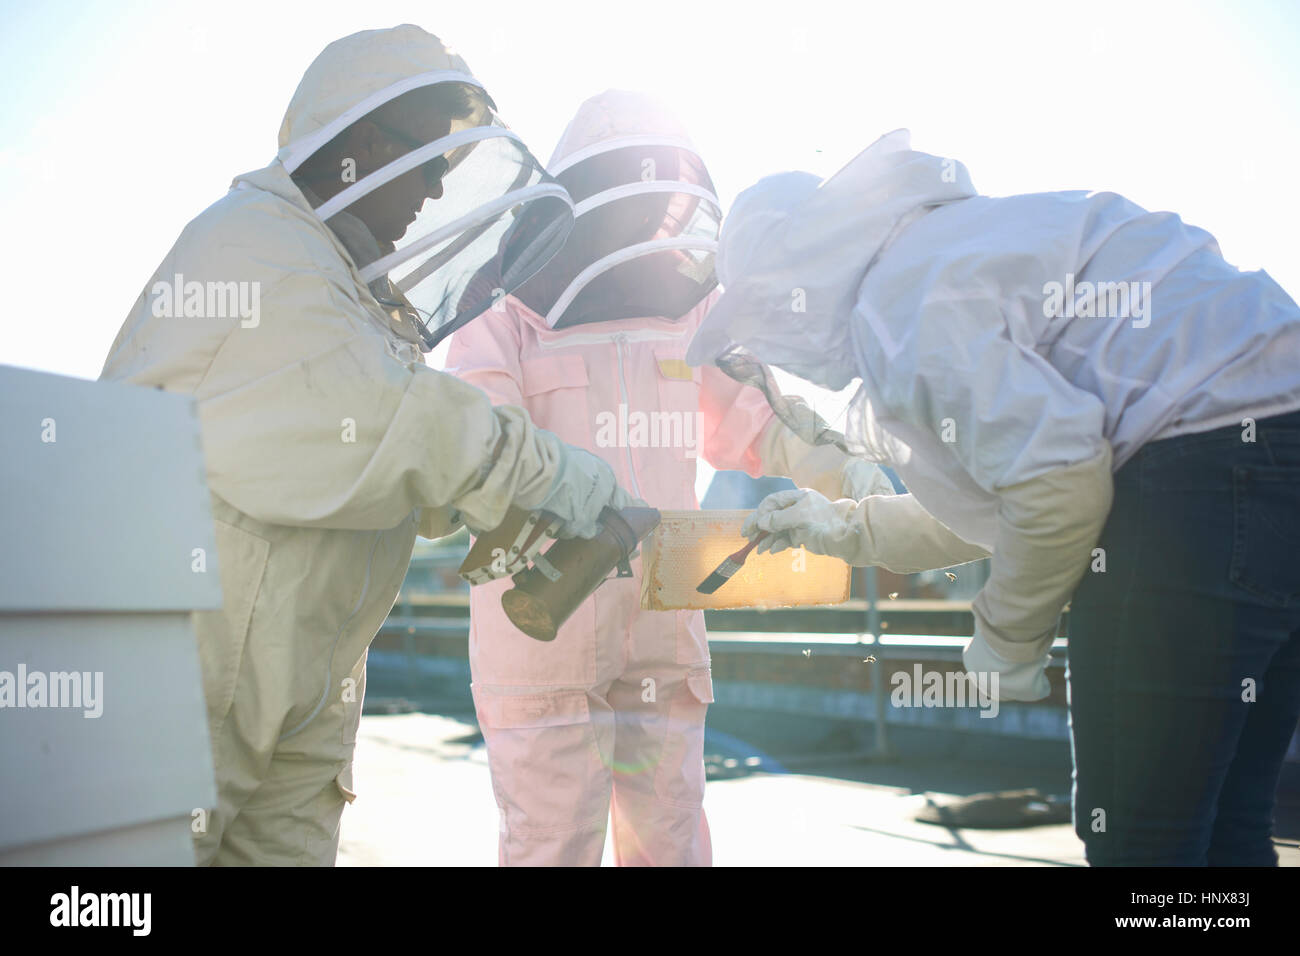 Beekeepers discussing honeycomb on city rooftop - Stock Image